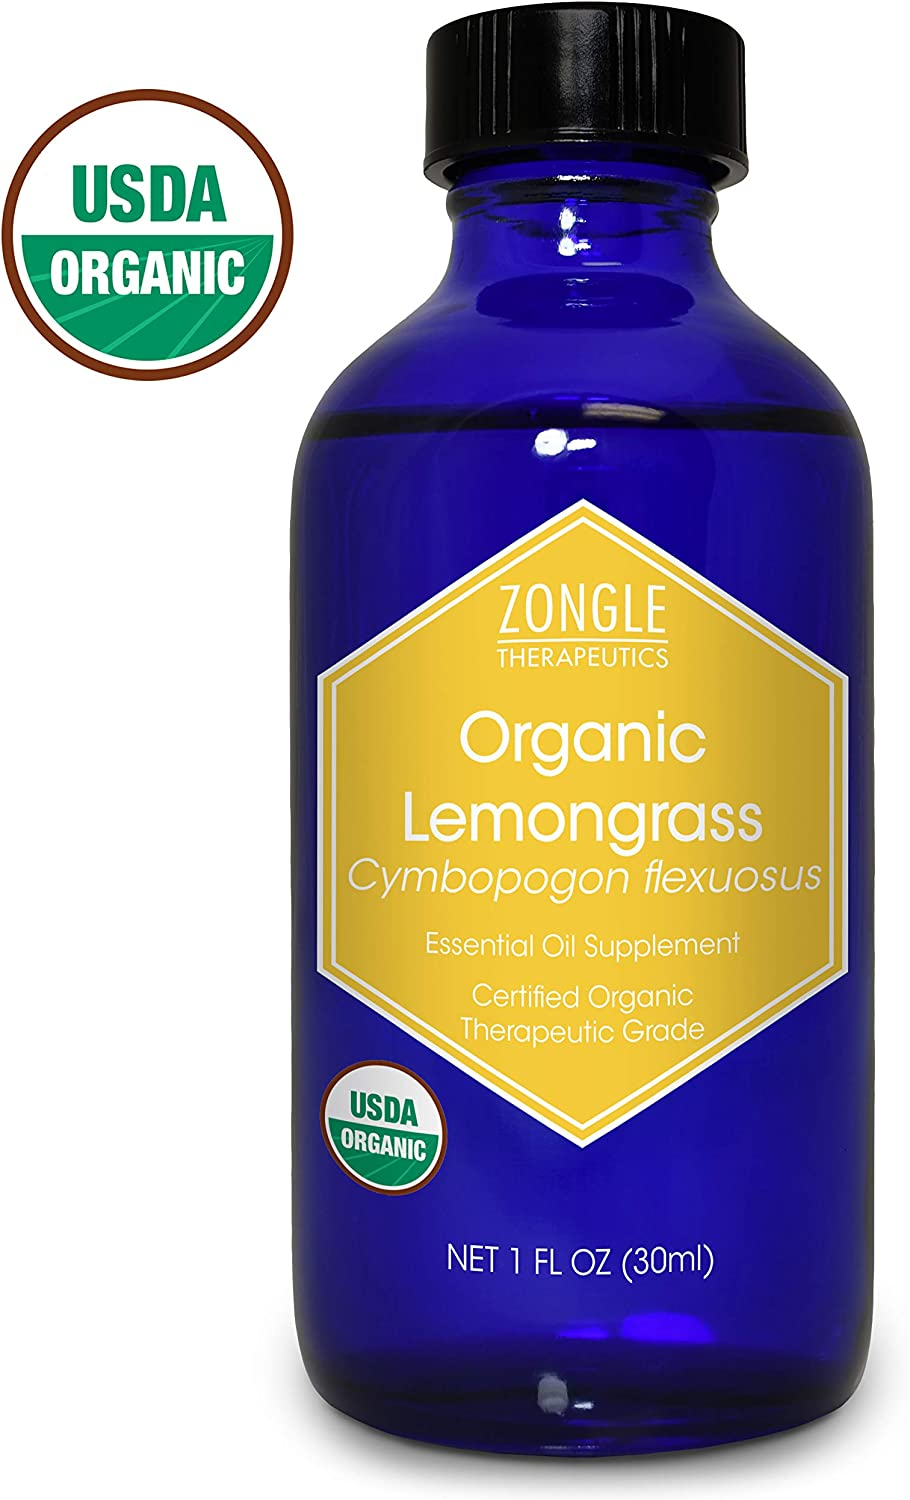 Zongle USDA Certified Organic Lemongrass Essential Oil, Safe to Ingest, Cymbopogon Flexuosus, 1 OZ